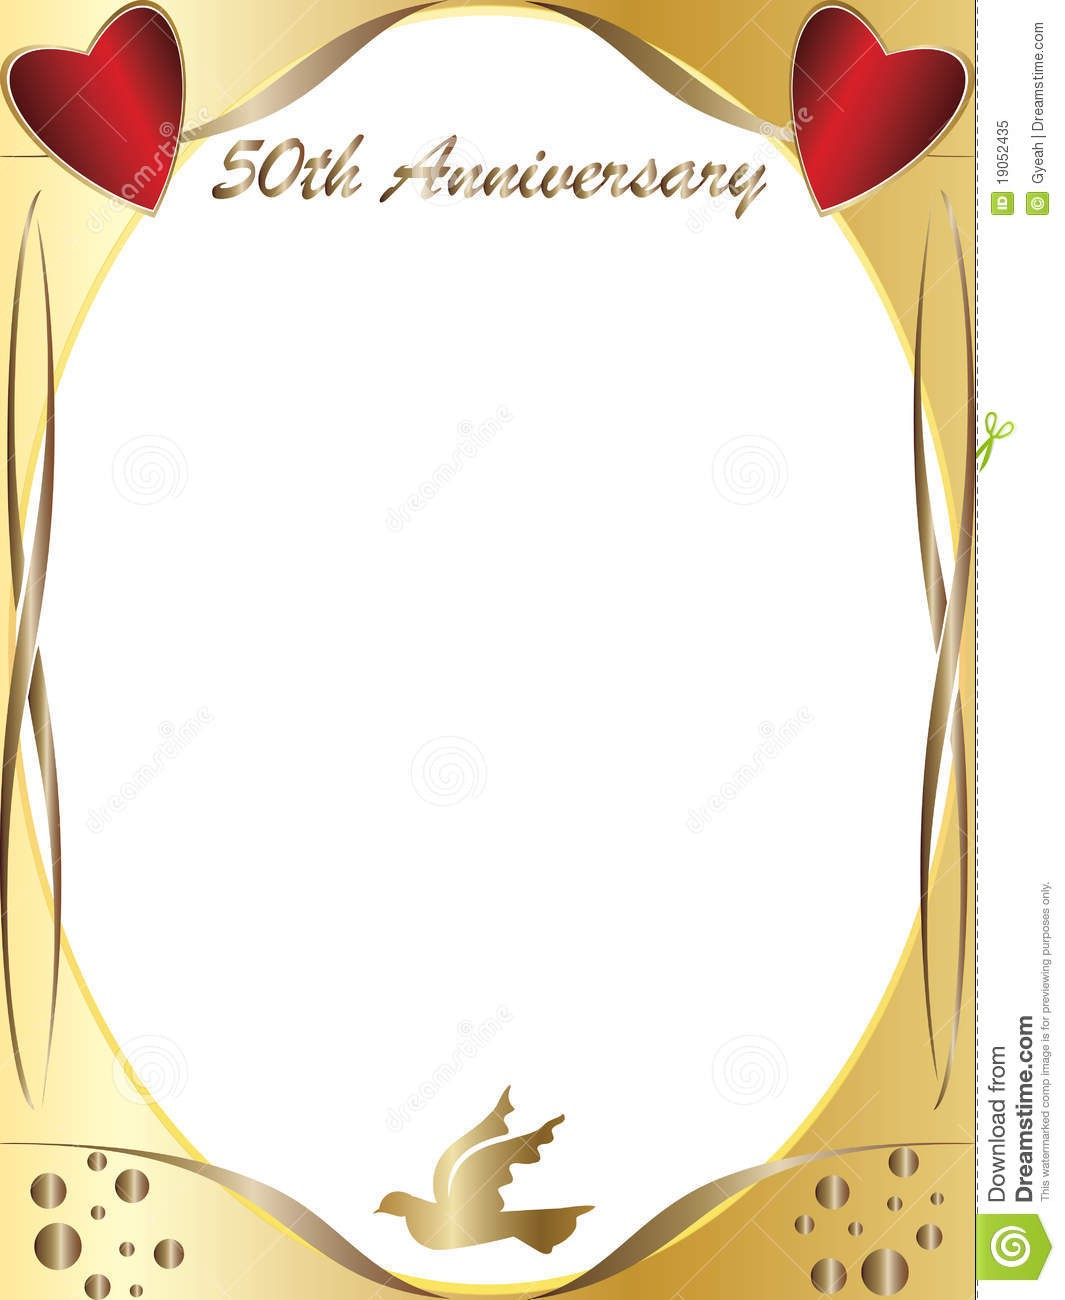 50th birthday border clip art ; 1518399690-50th-wedding-anniversary-19052435